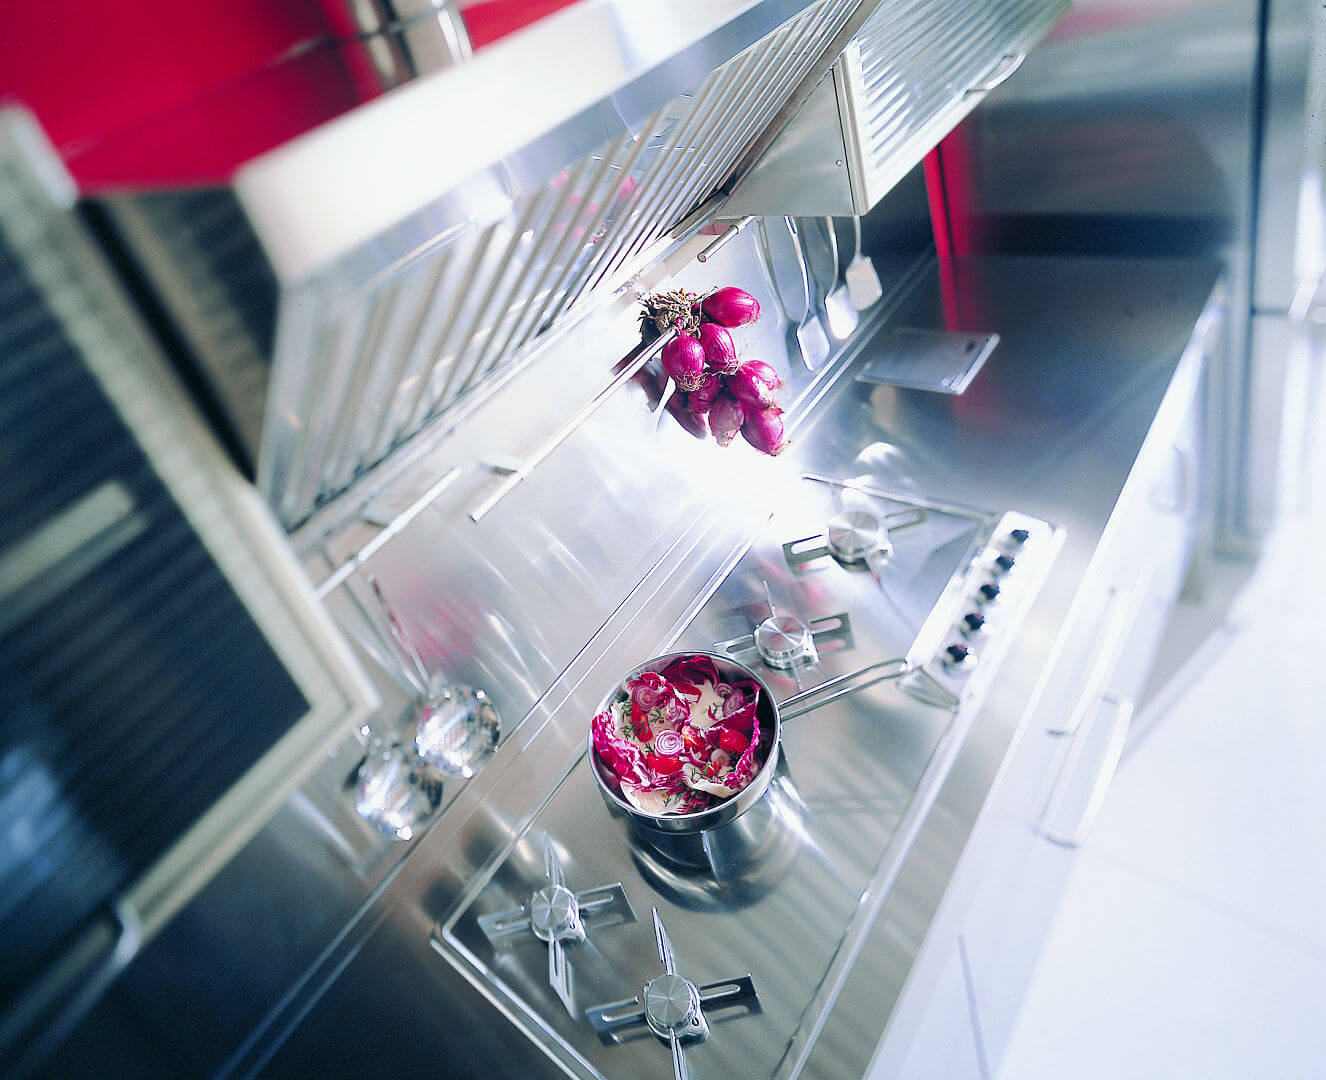 Arca Cucine Italy - Home Kitchen Stainless Steel - Spring - Cooking and Extraction Plan